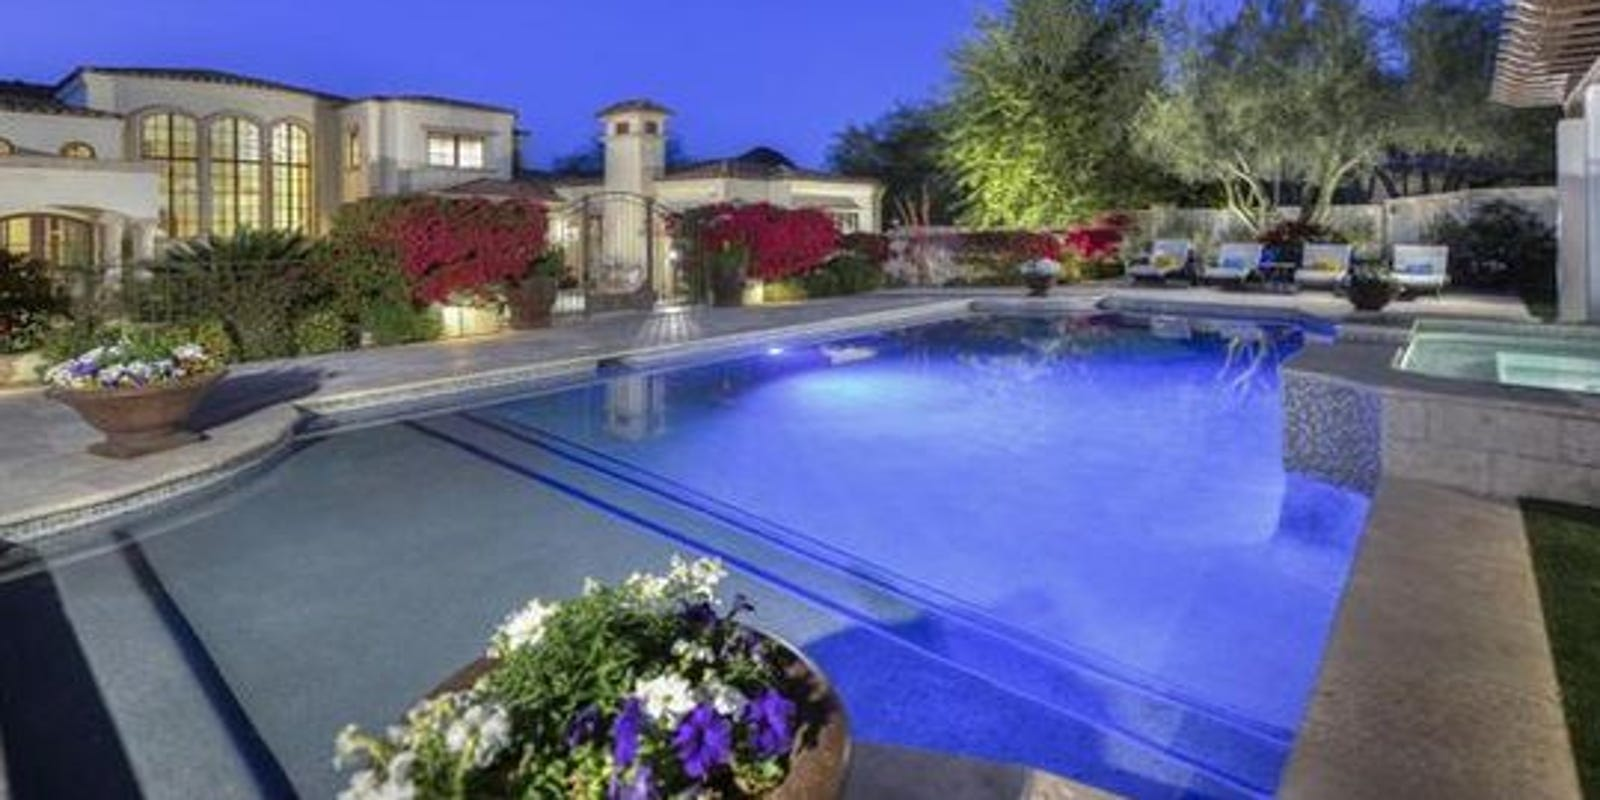 More Valley buyers diving into houses with pools on art ideas, 30 day fitness challenge ideas, backyard sanctuary ideas, backyard train ideas, cheap backyard ideas, vaulted ceilings ideas, backyard paradise ideas, backyard river ideas, backyard patio, diy ideas, backyard sea ideas, moroccan backyard ideas, backyard island ideas, small backyard ideas, backyard pool ideas, family room ideas, backyard shed ideas, patio ideas, small back yard landscaping ideas, backyard ocean ideas,